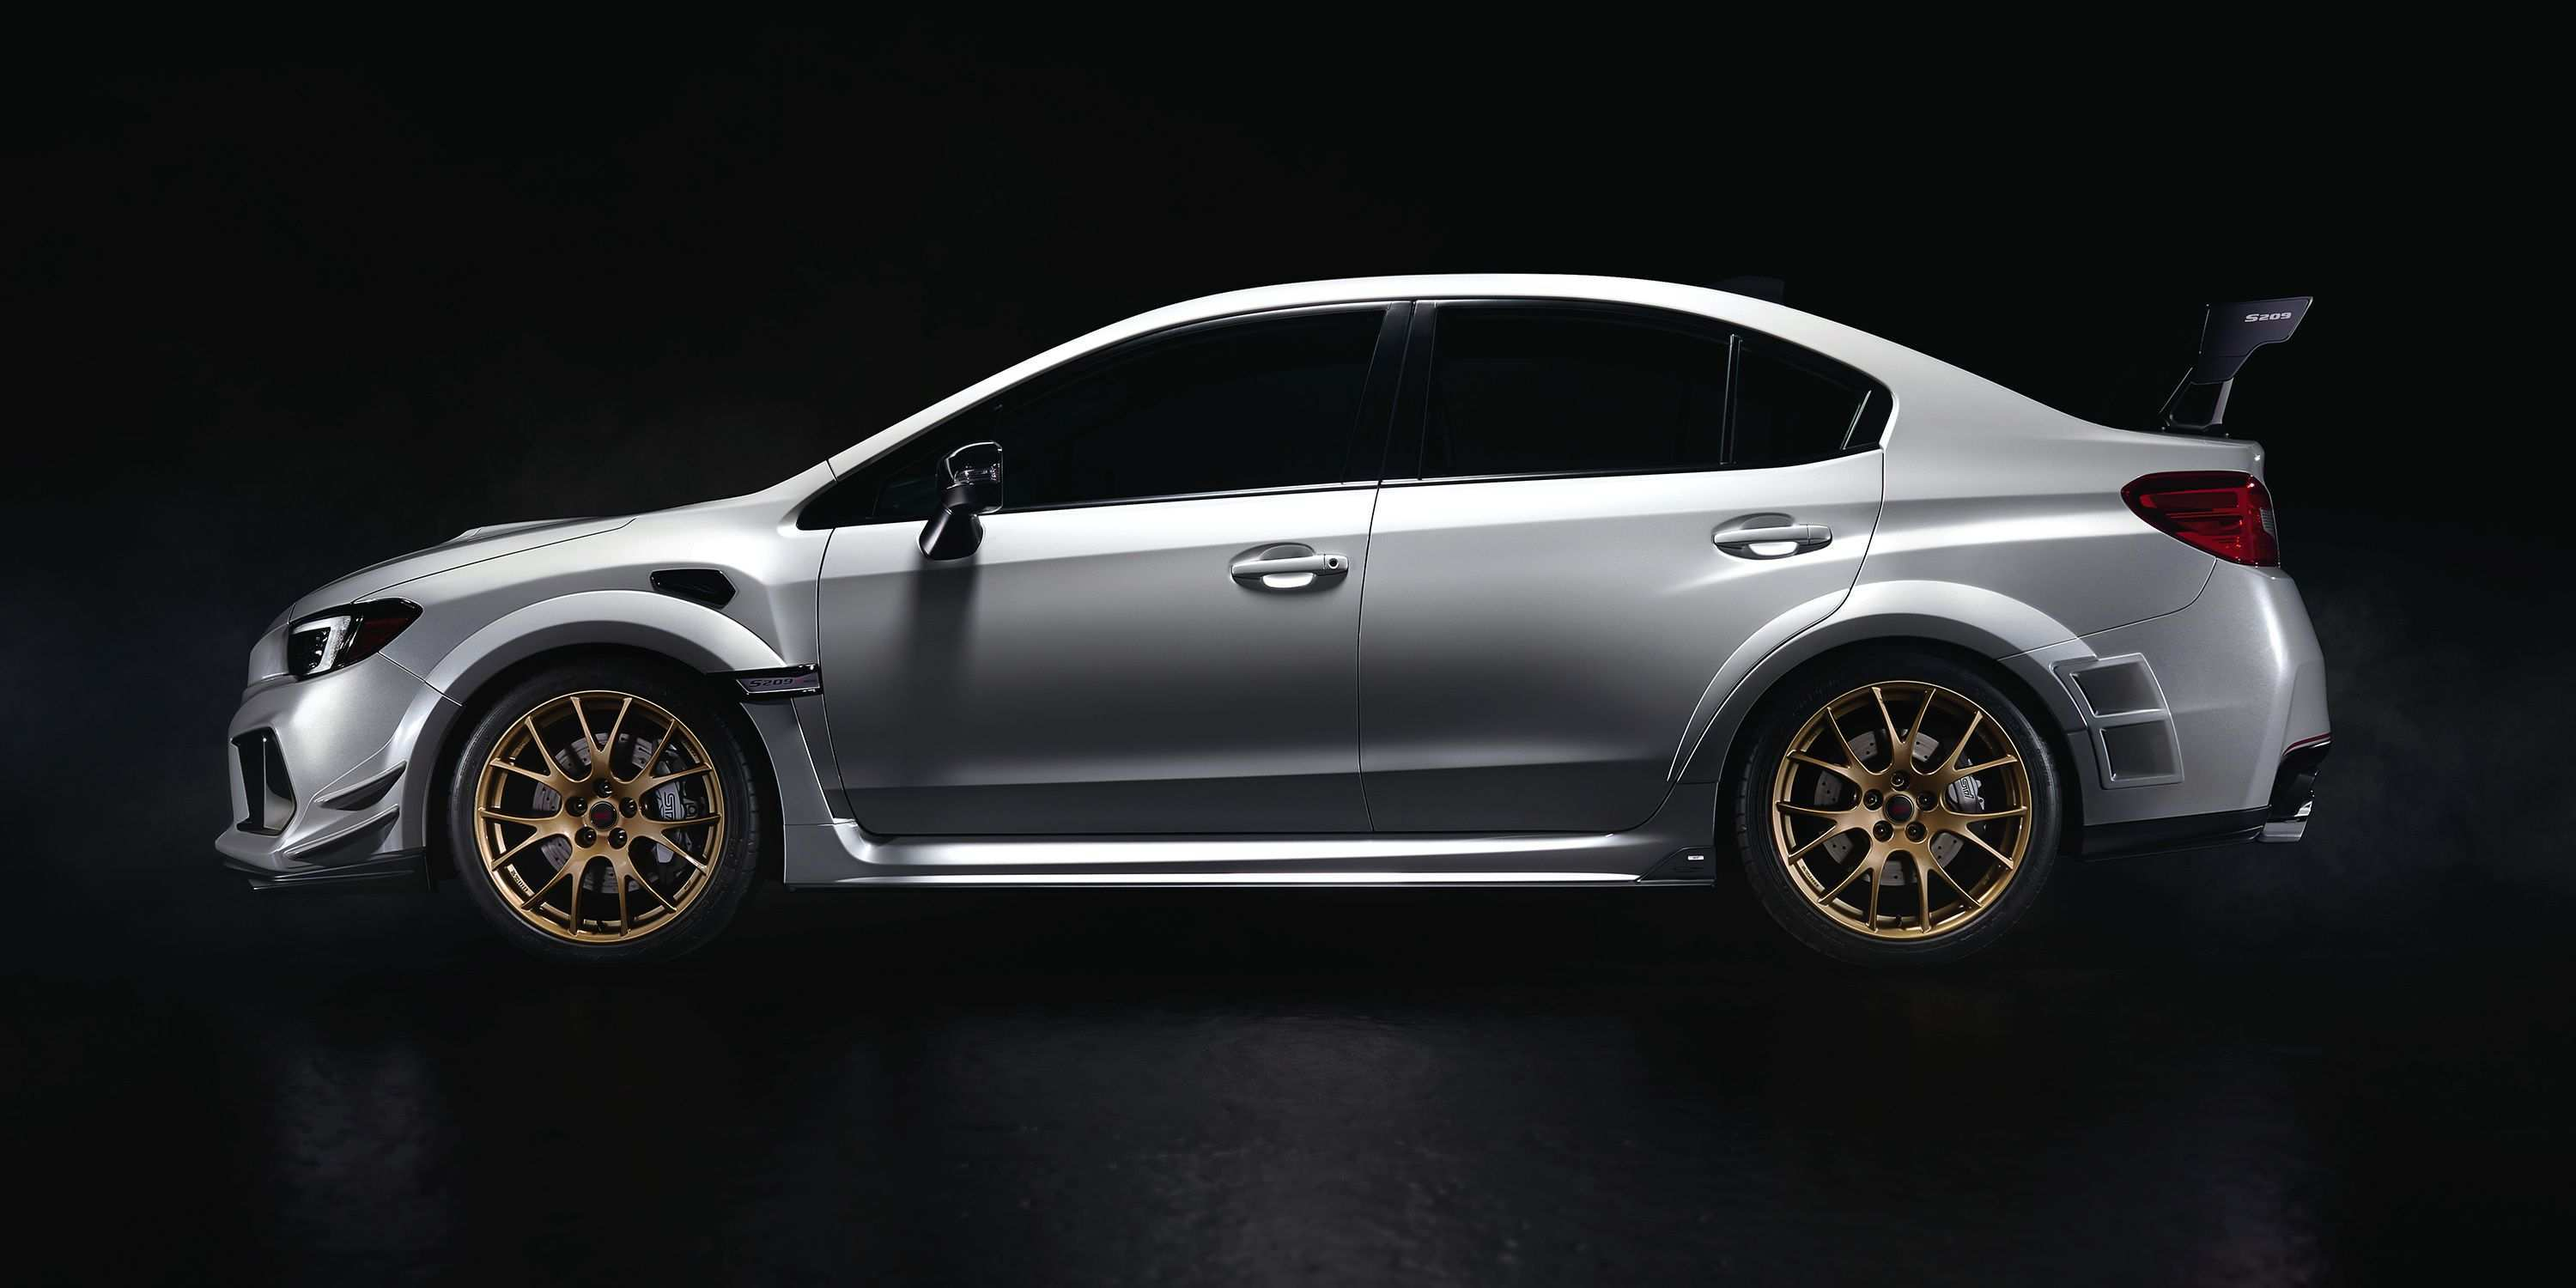 64 The Best Subaru New Wrx 2020 Concept